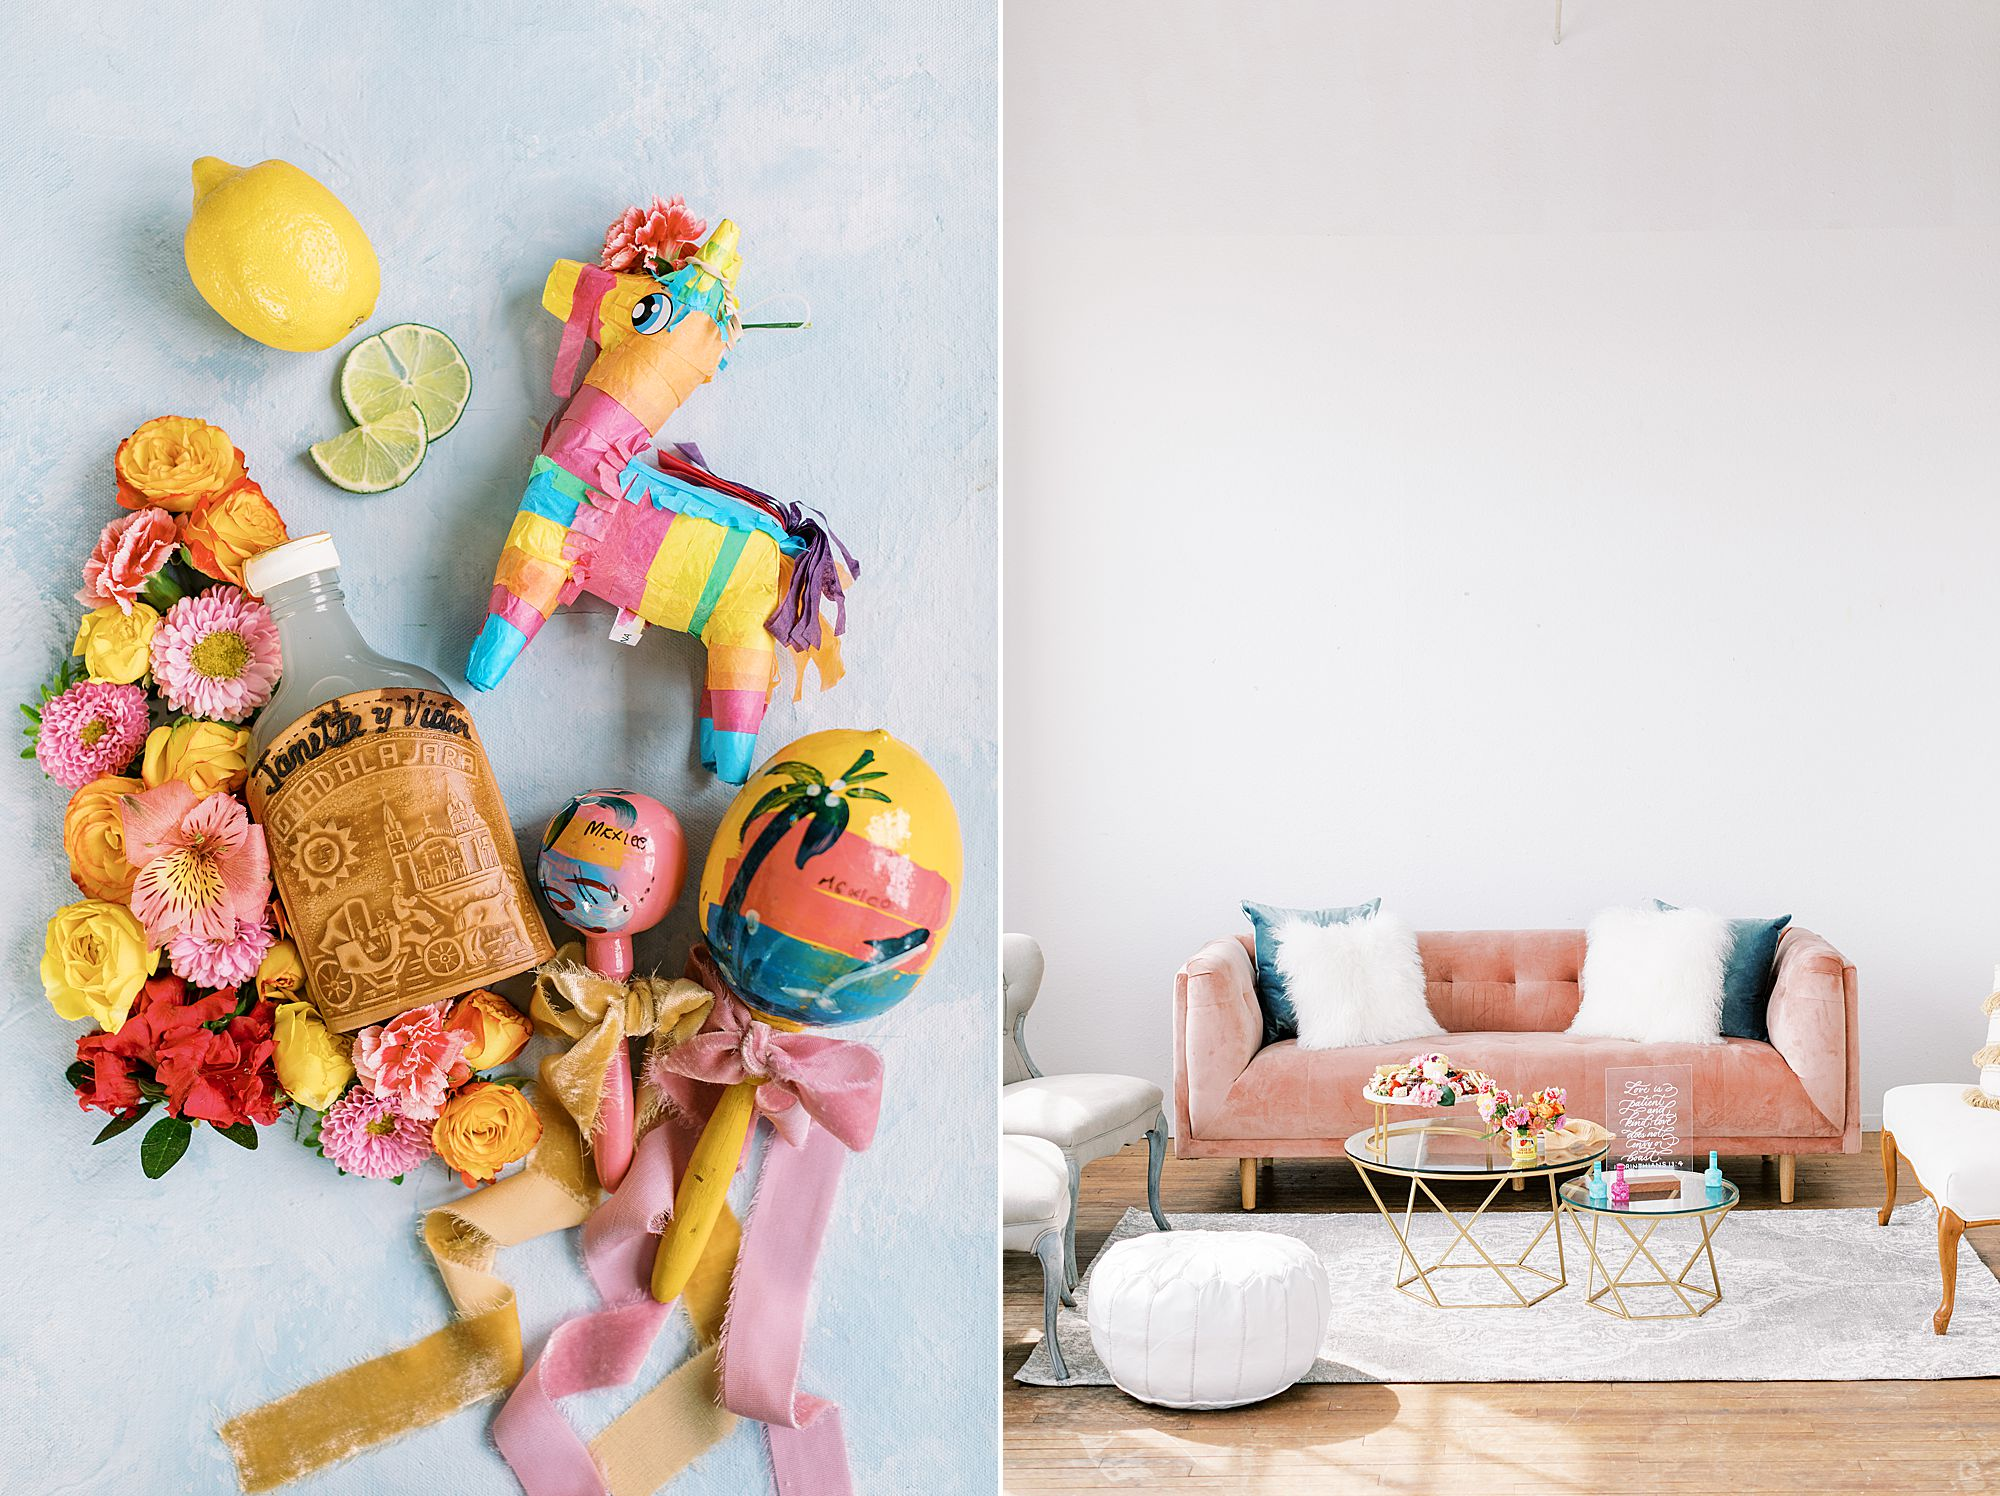 Cinco De Mayo Inspiration for Your FIesta - Party Crush Studio and Ashley Baumgartner_0032.jpg